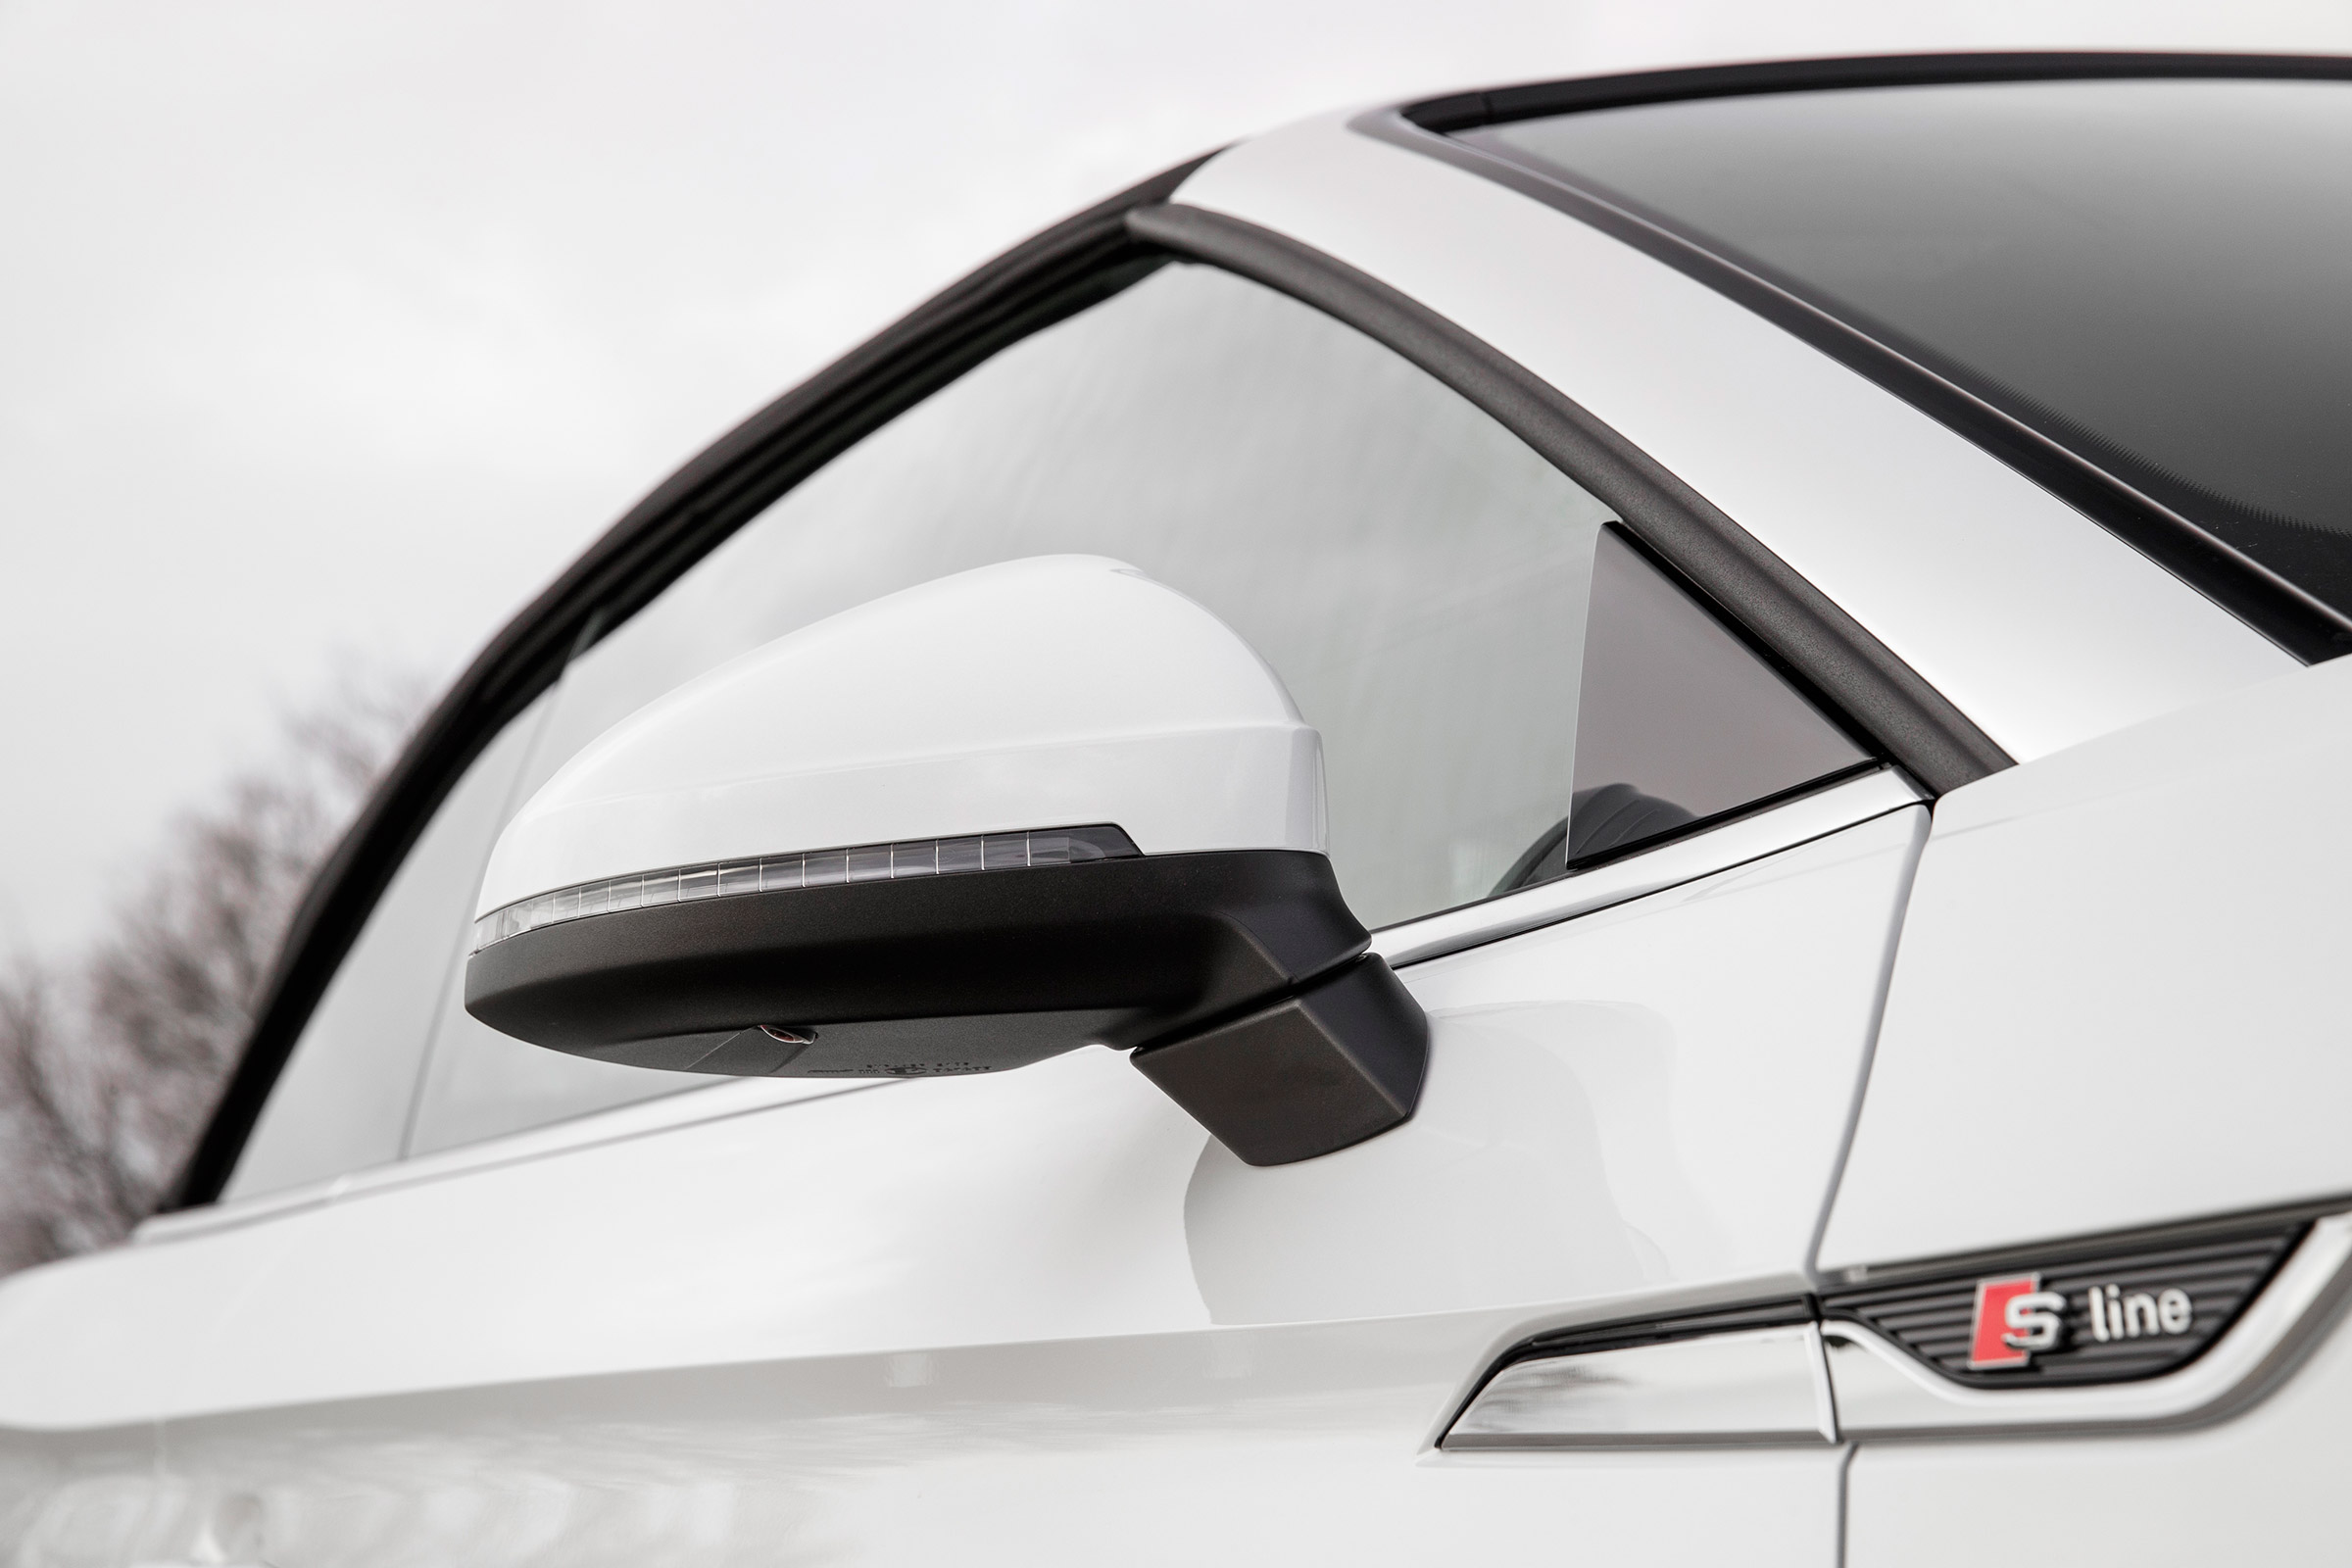 2017 Audi A5 Cabriolet Exterior View Side Mirror (Photo 4 of 18)